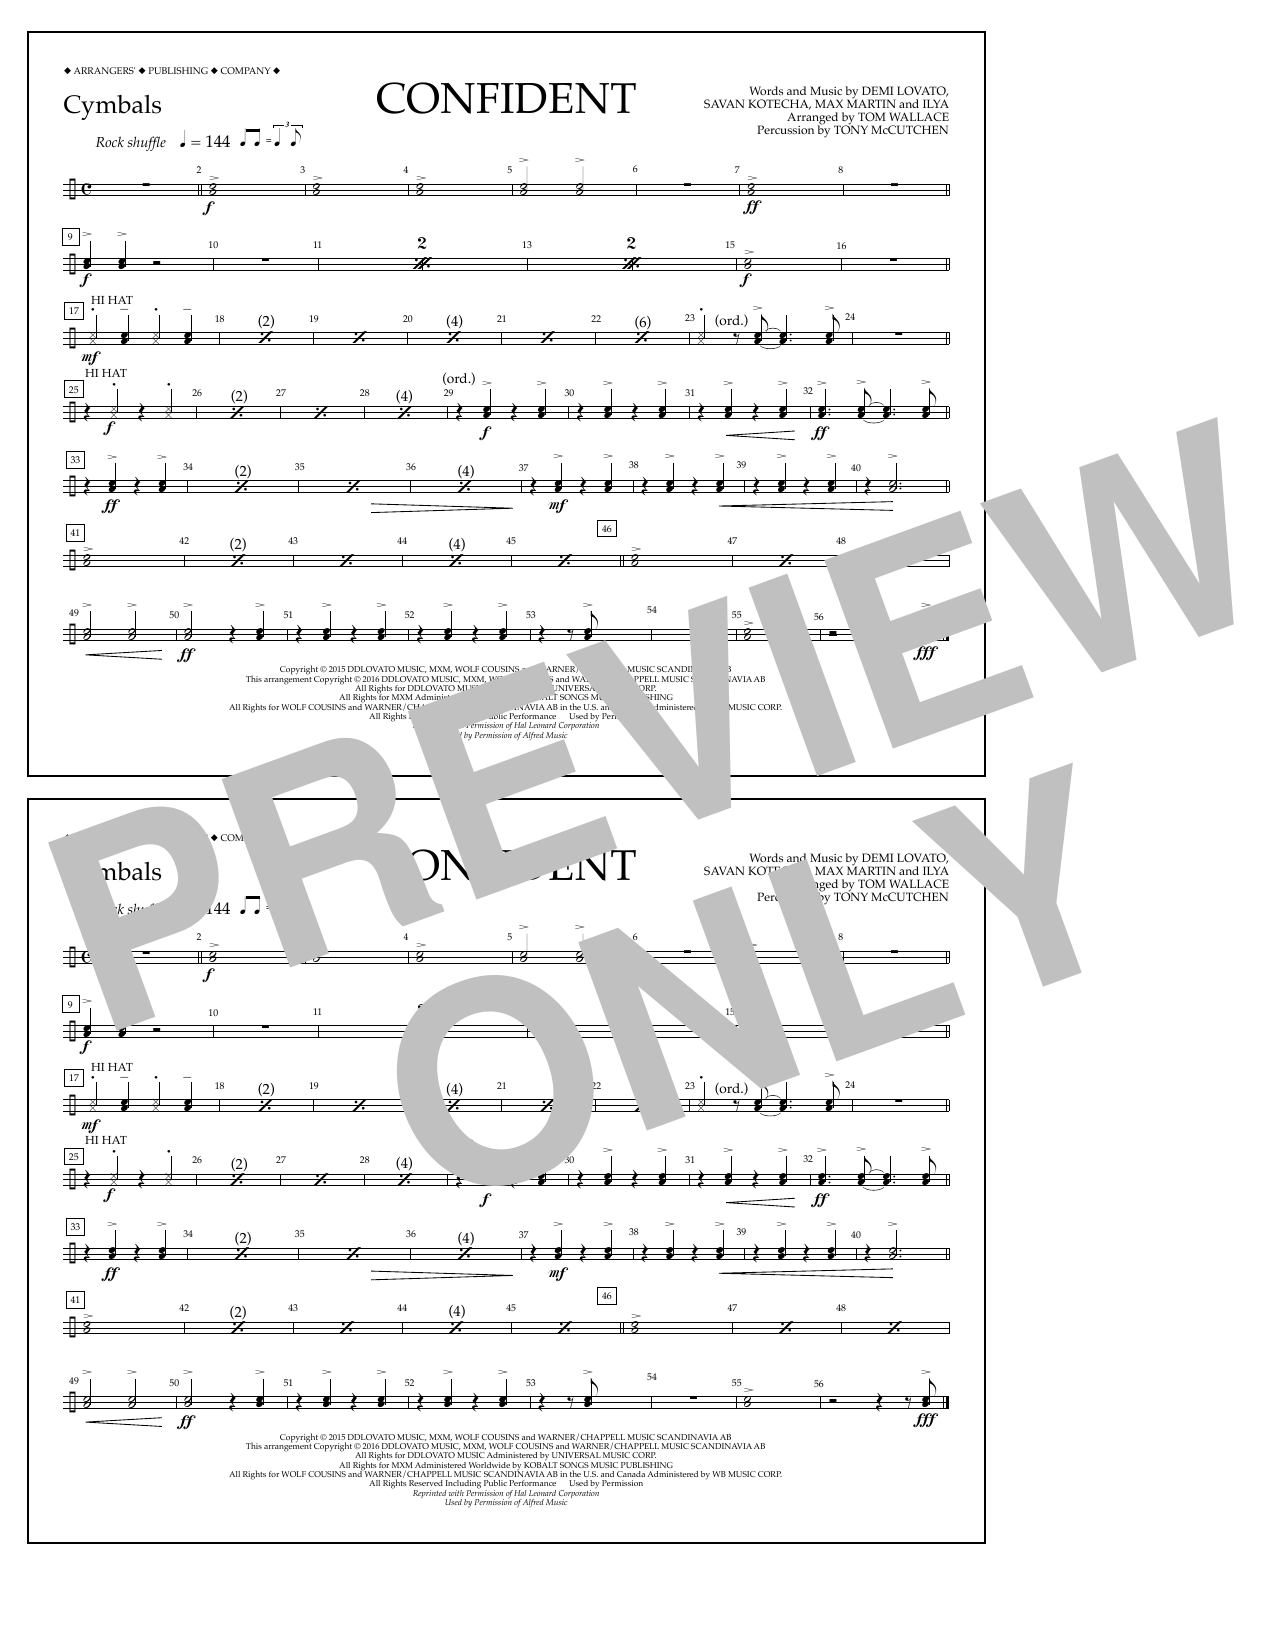 Sheet music digital files to print licensed demi lovato digital confident cymbals hexwebz Images